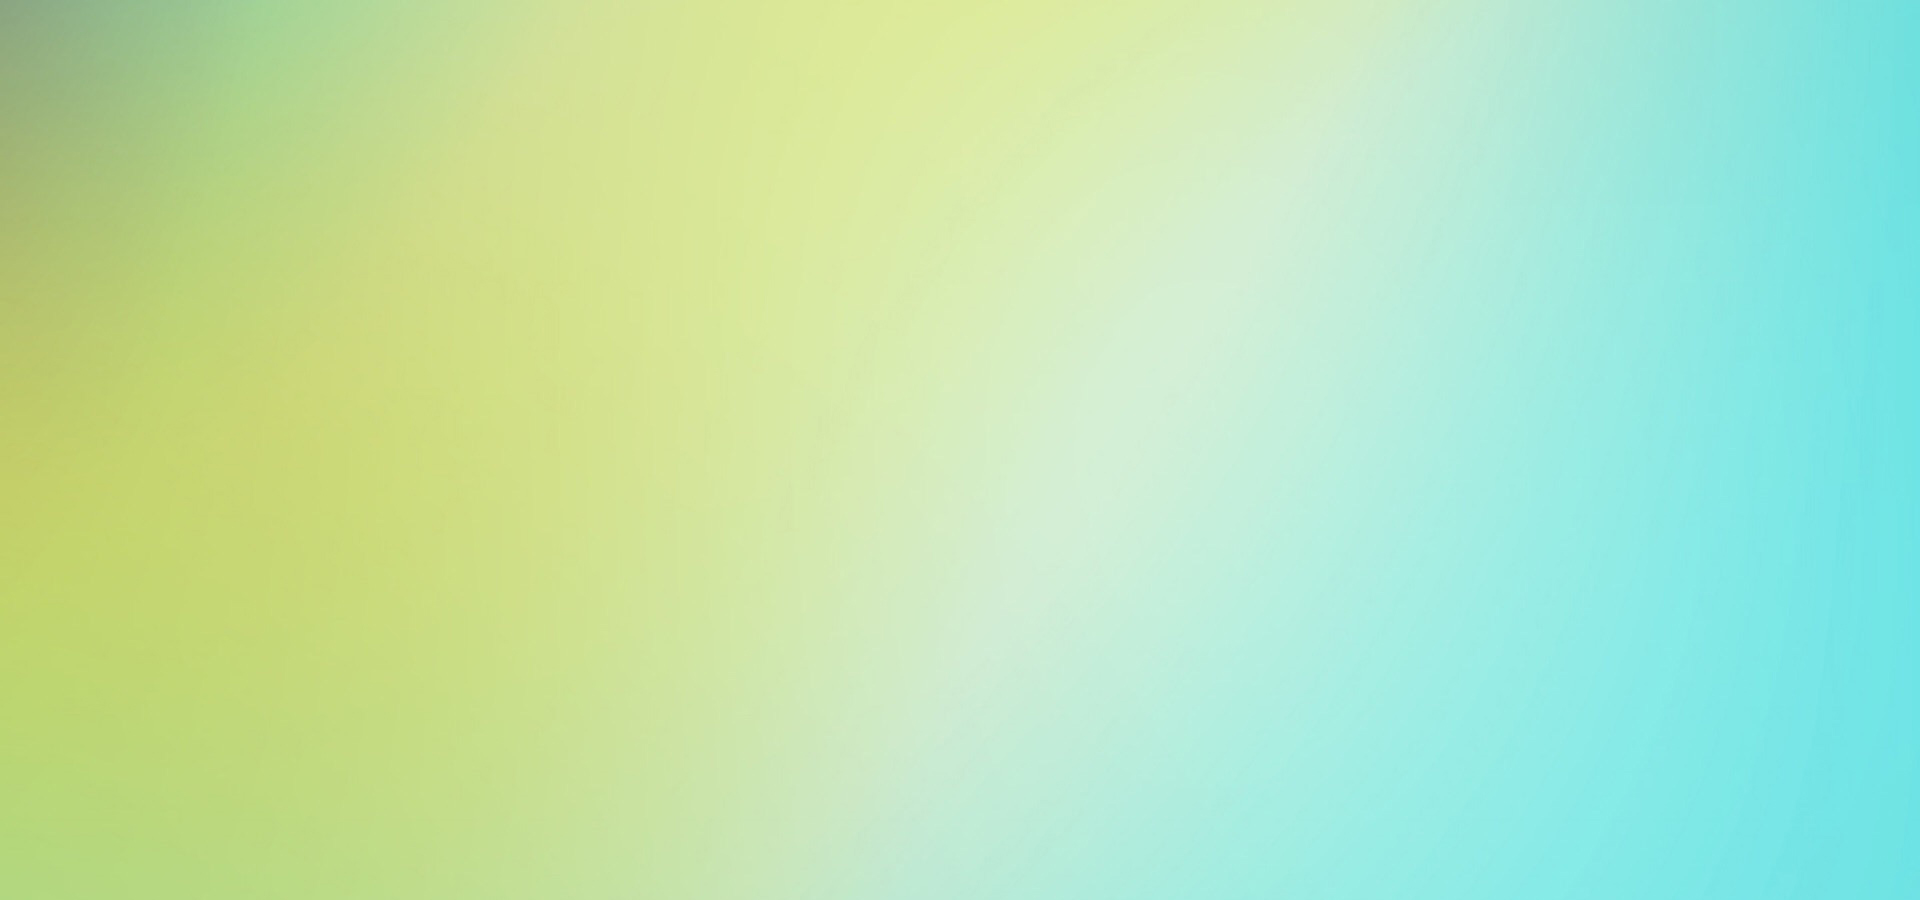 beautiful solid color gradient  green  blue  gradual